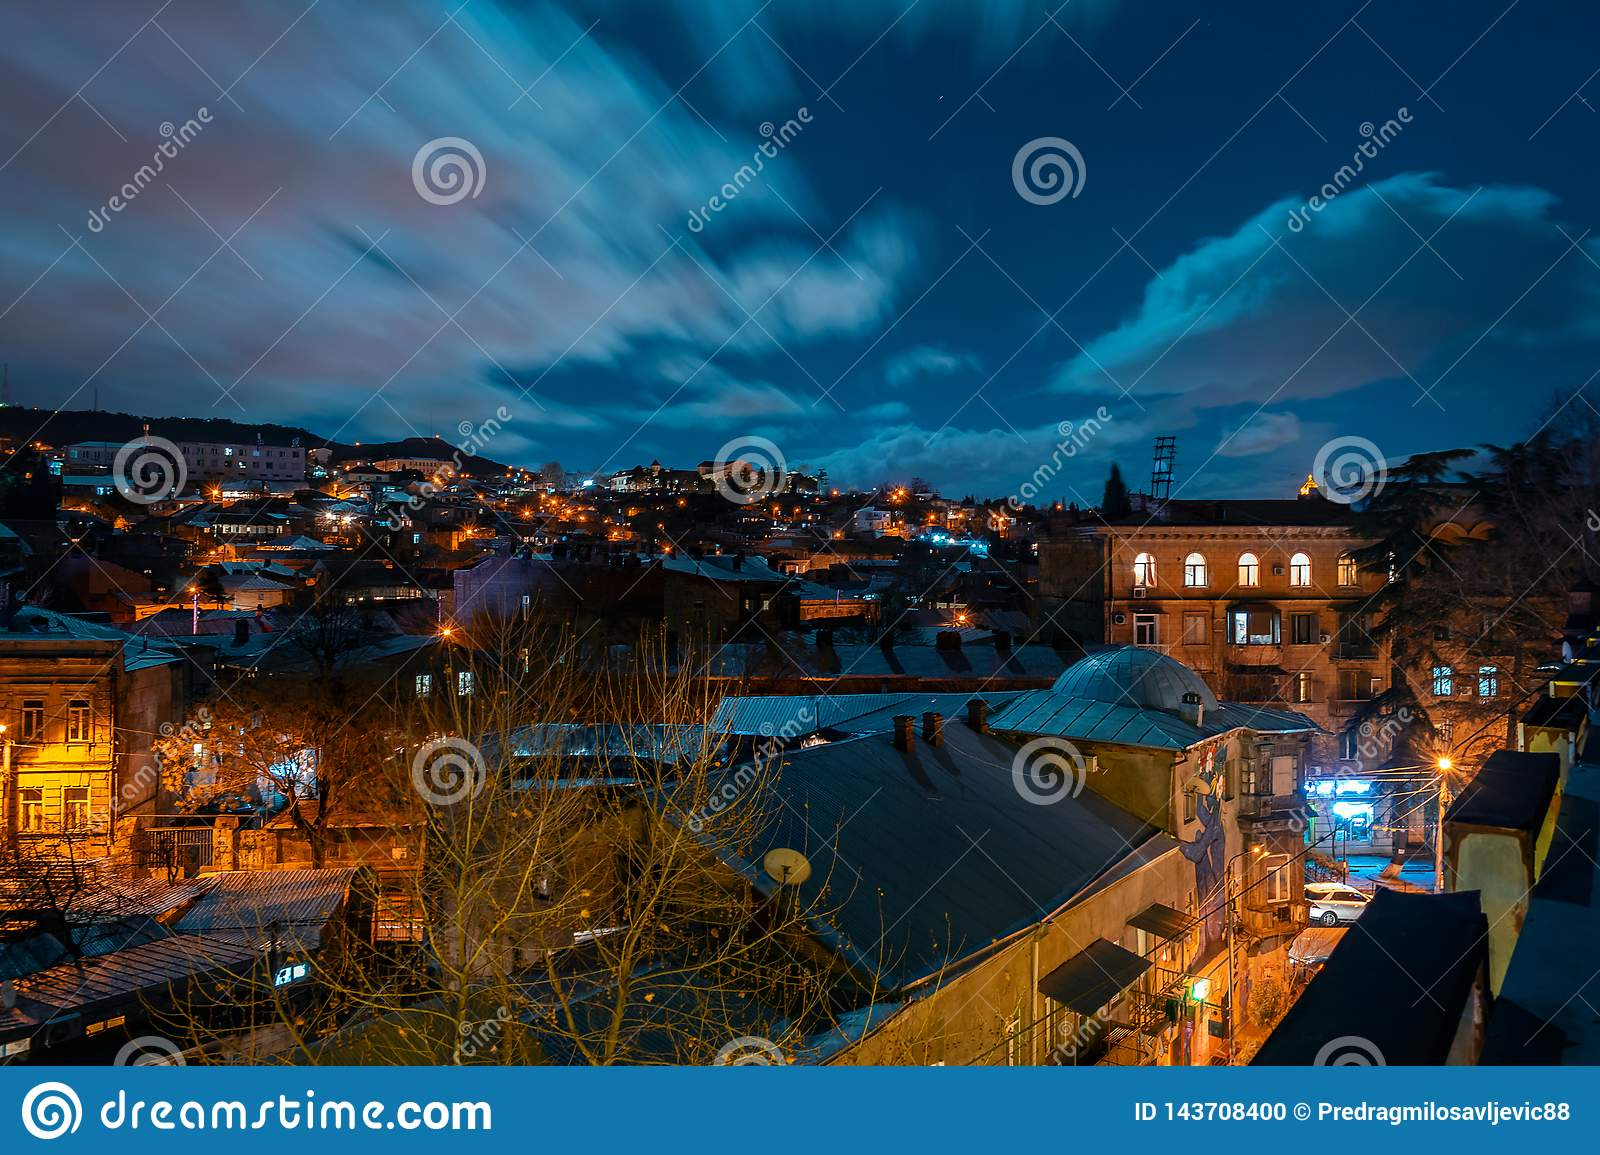 Georgia, Tbilisi - 05.02.2019. - Night cityscape view. Thick clouds moving over the sky- Image